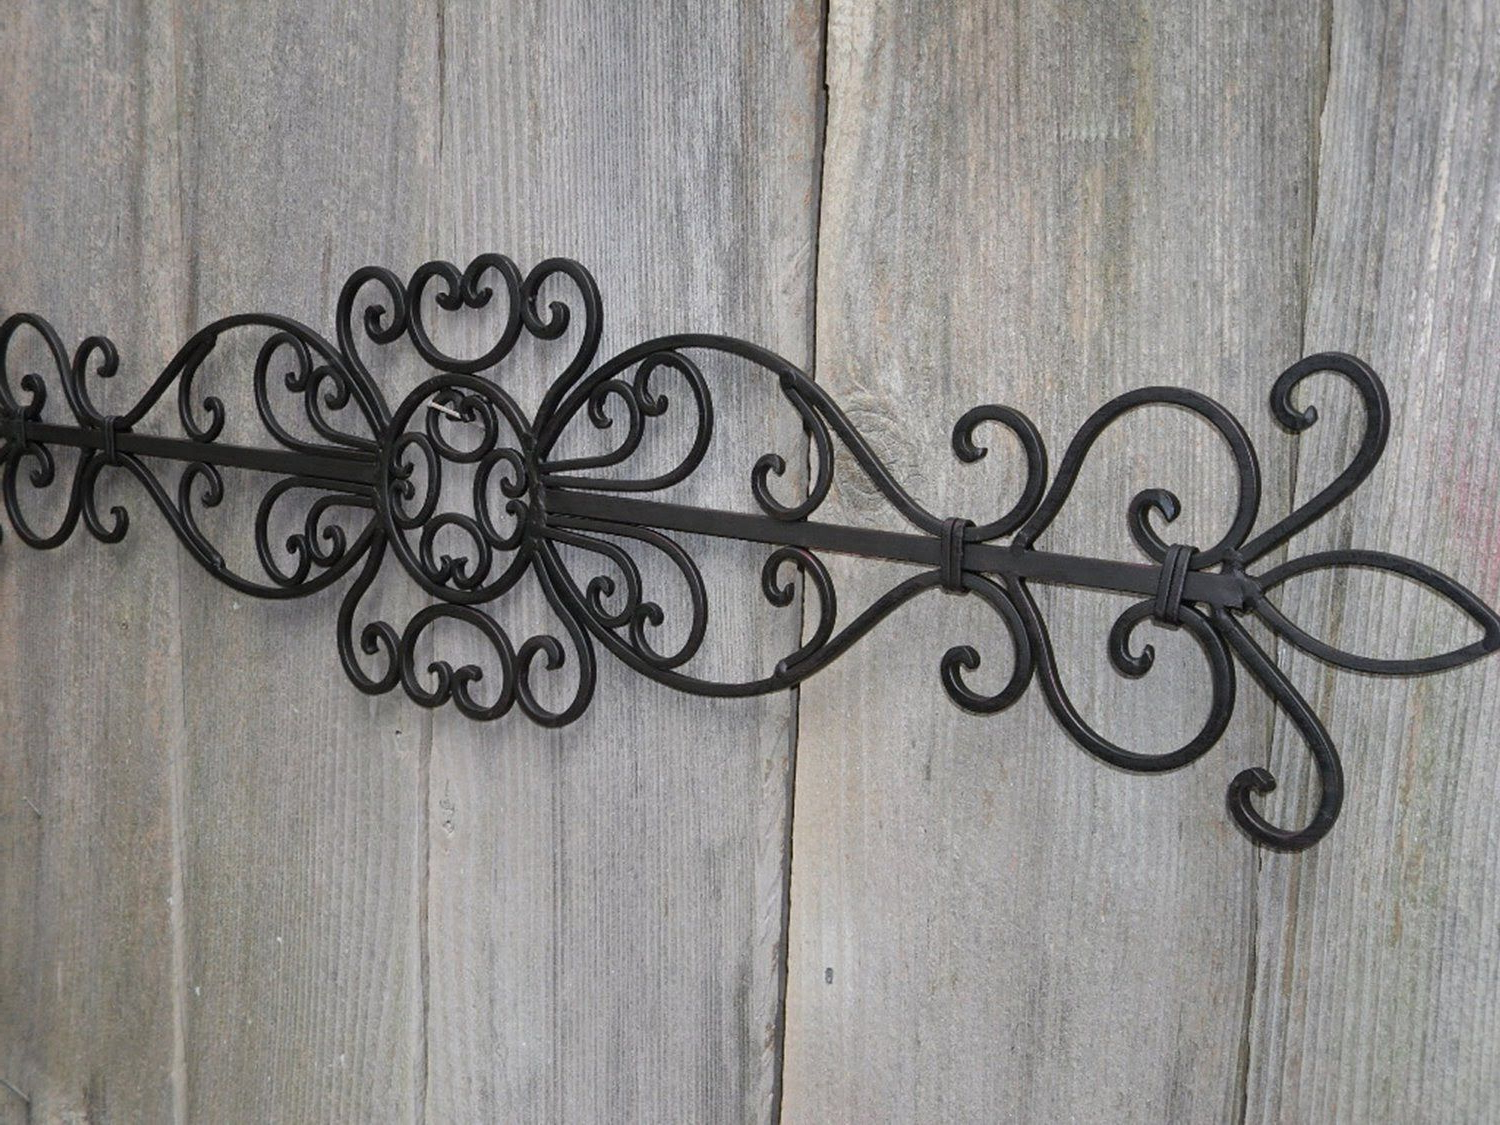 Wrought Iron Wall Decor (View 20 of 20)